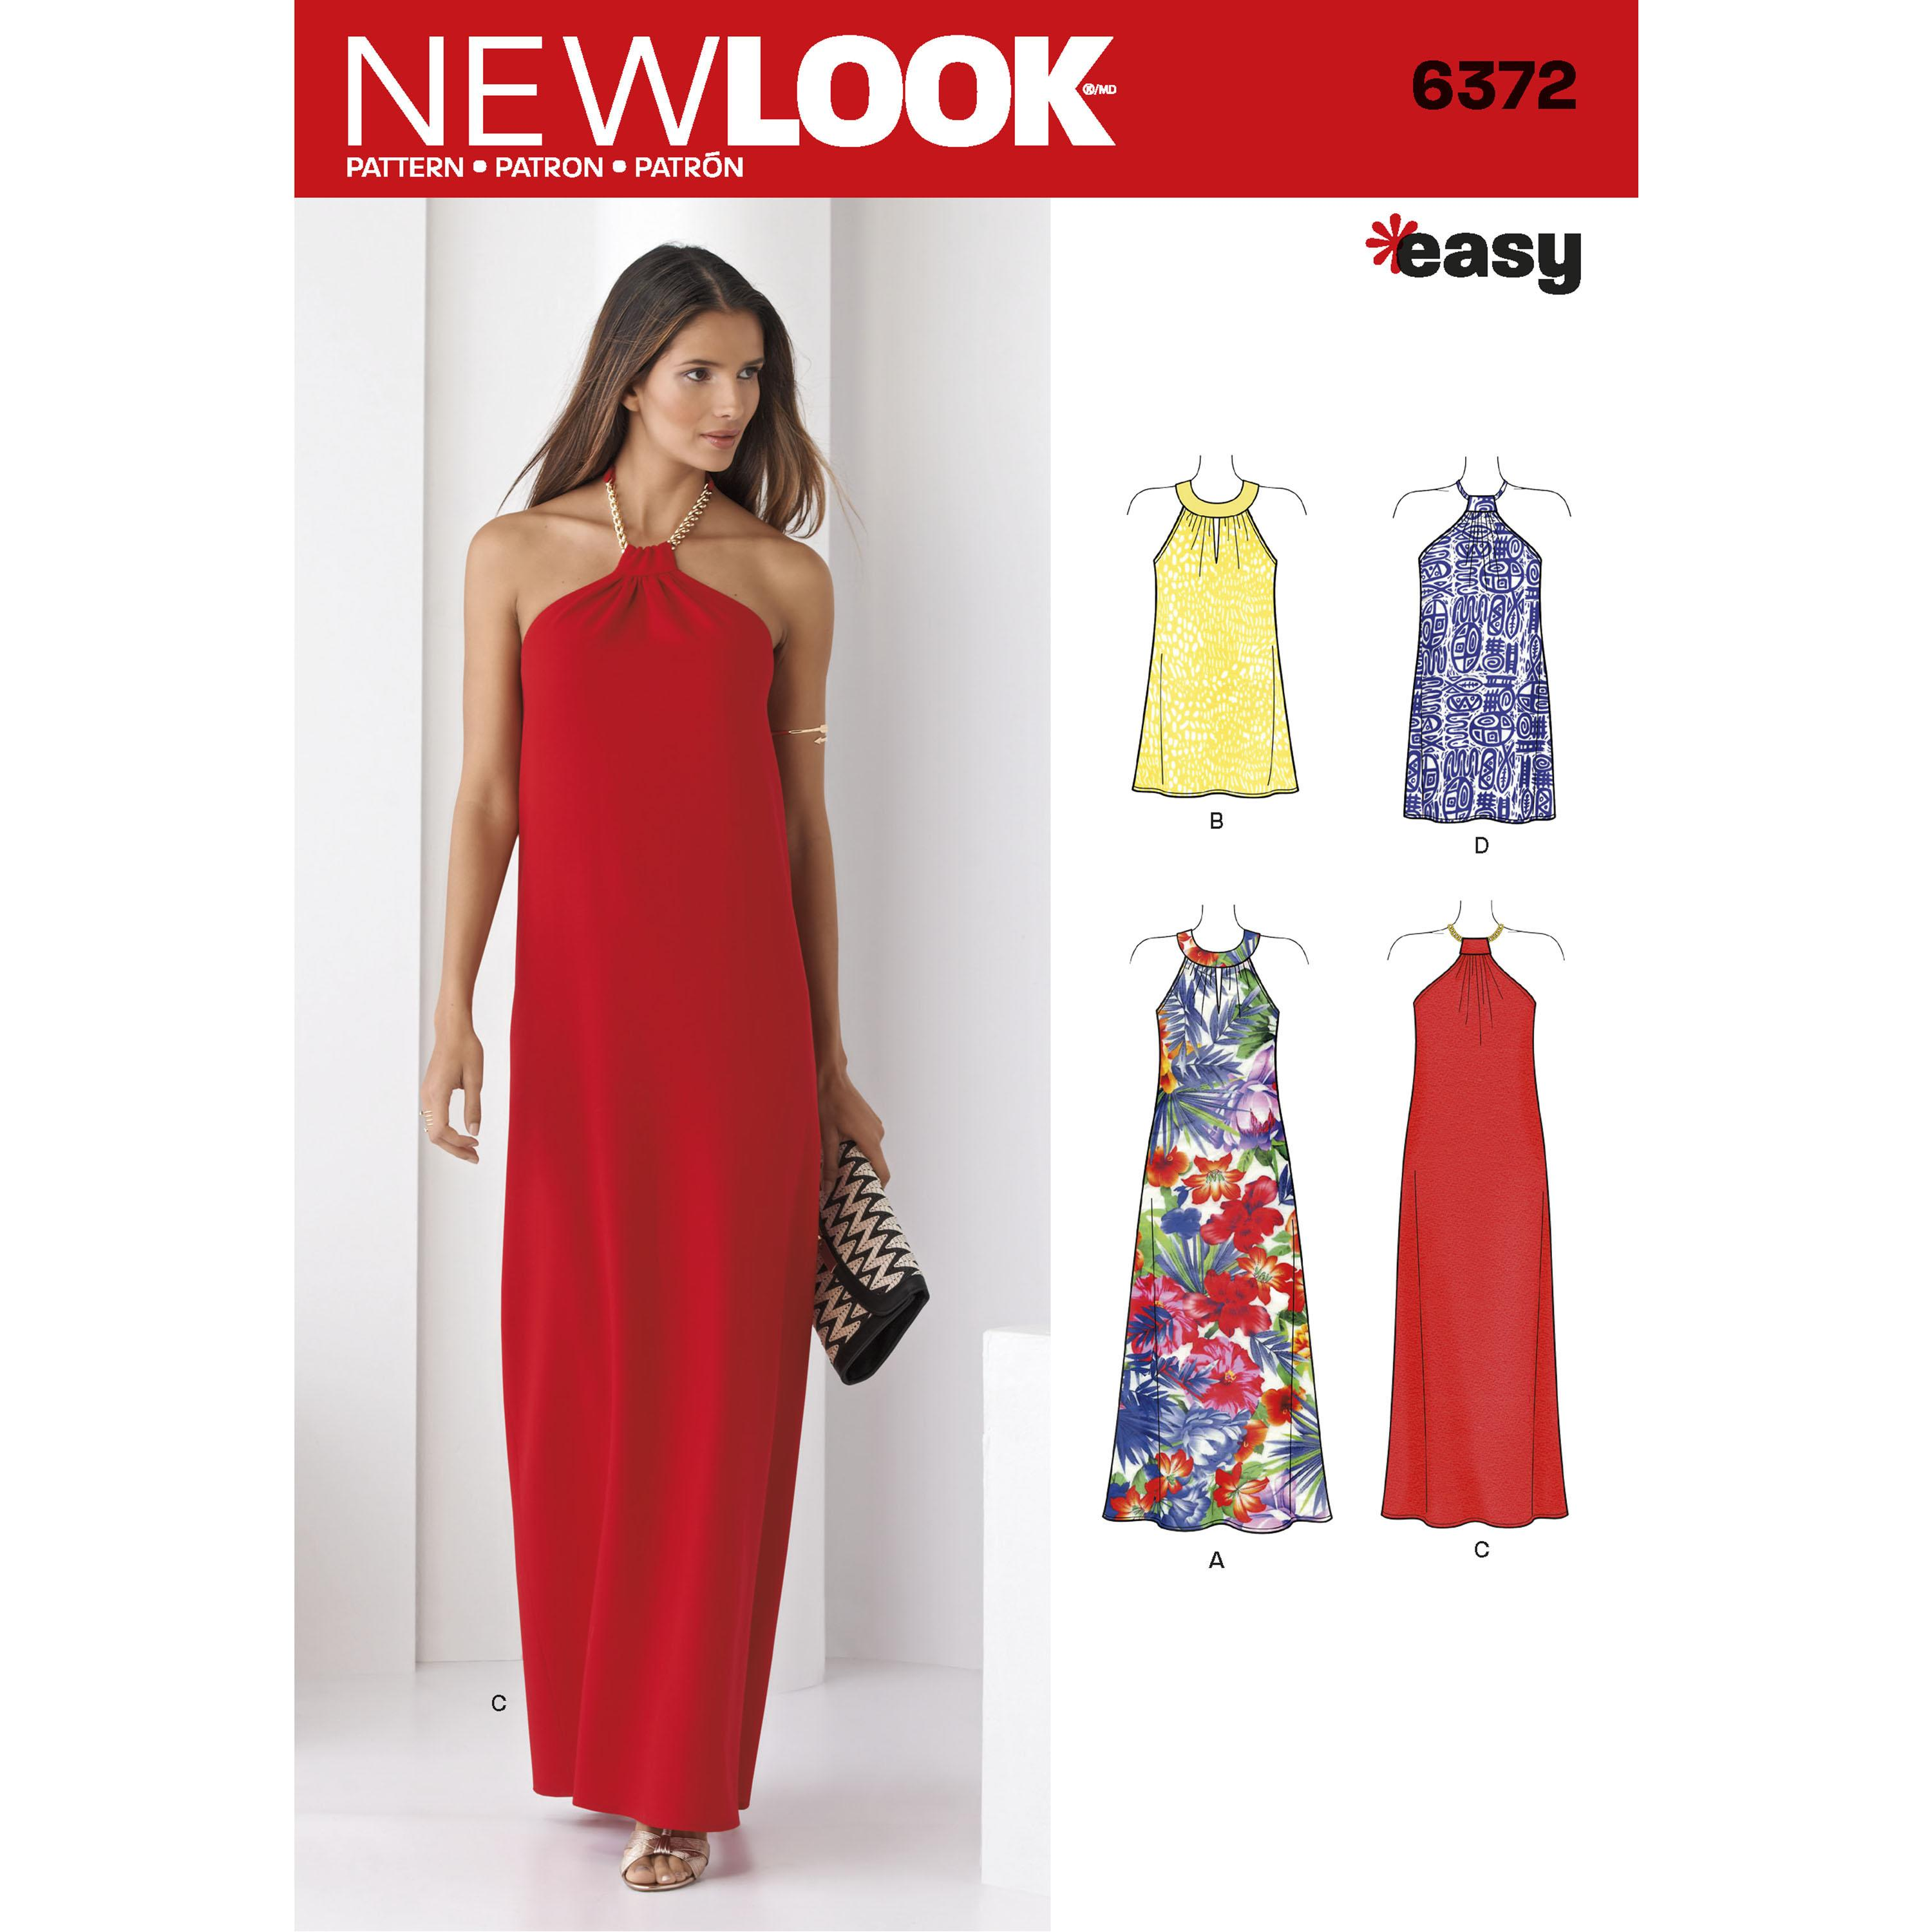 NewLook N6372 Misses' Dresses Each in Two Lengths